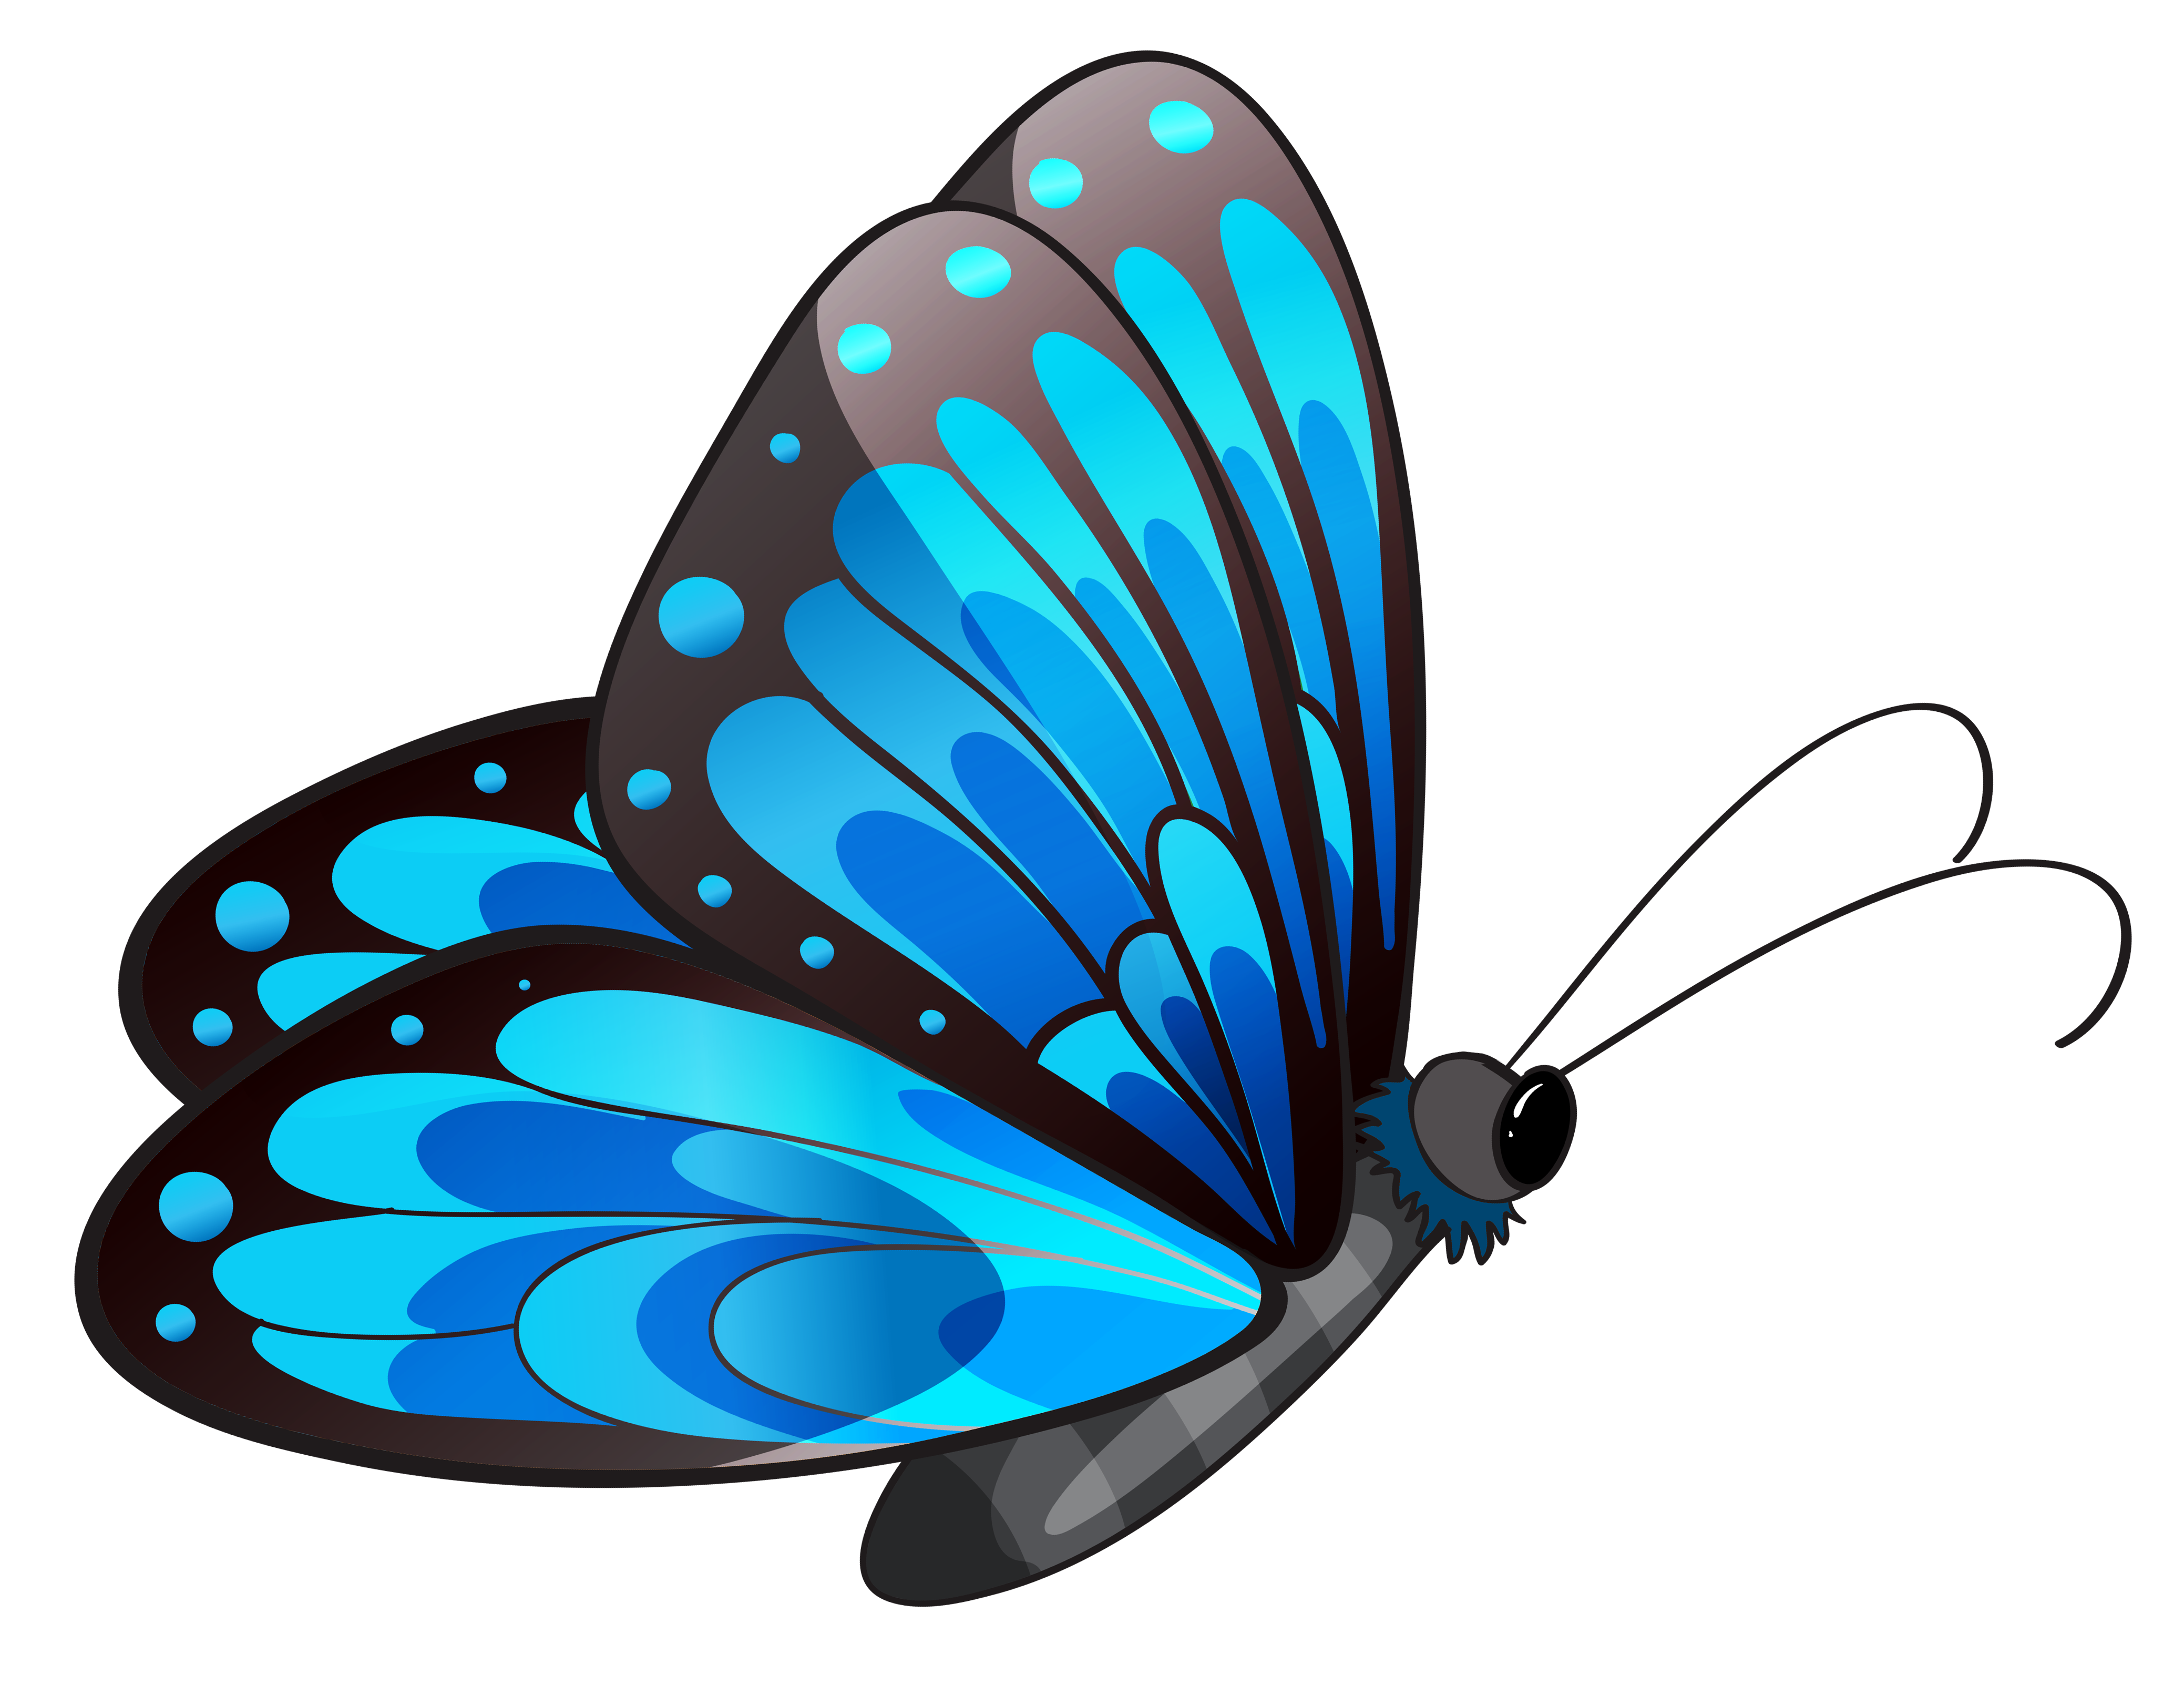 Transparent blue butterfly png. Fly clipart animated